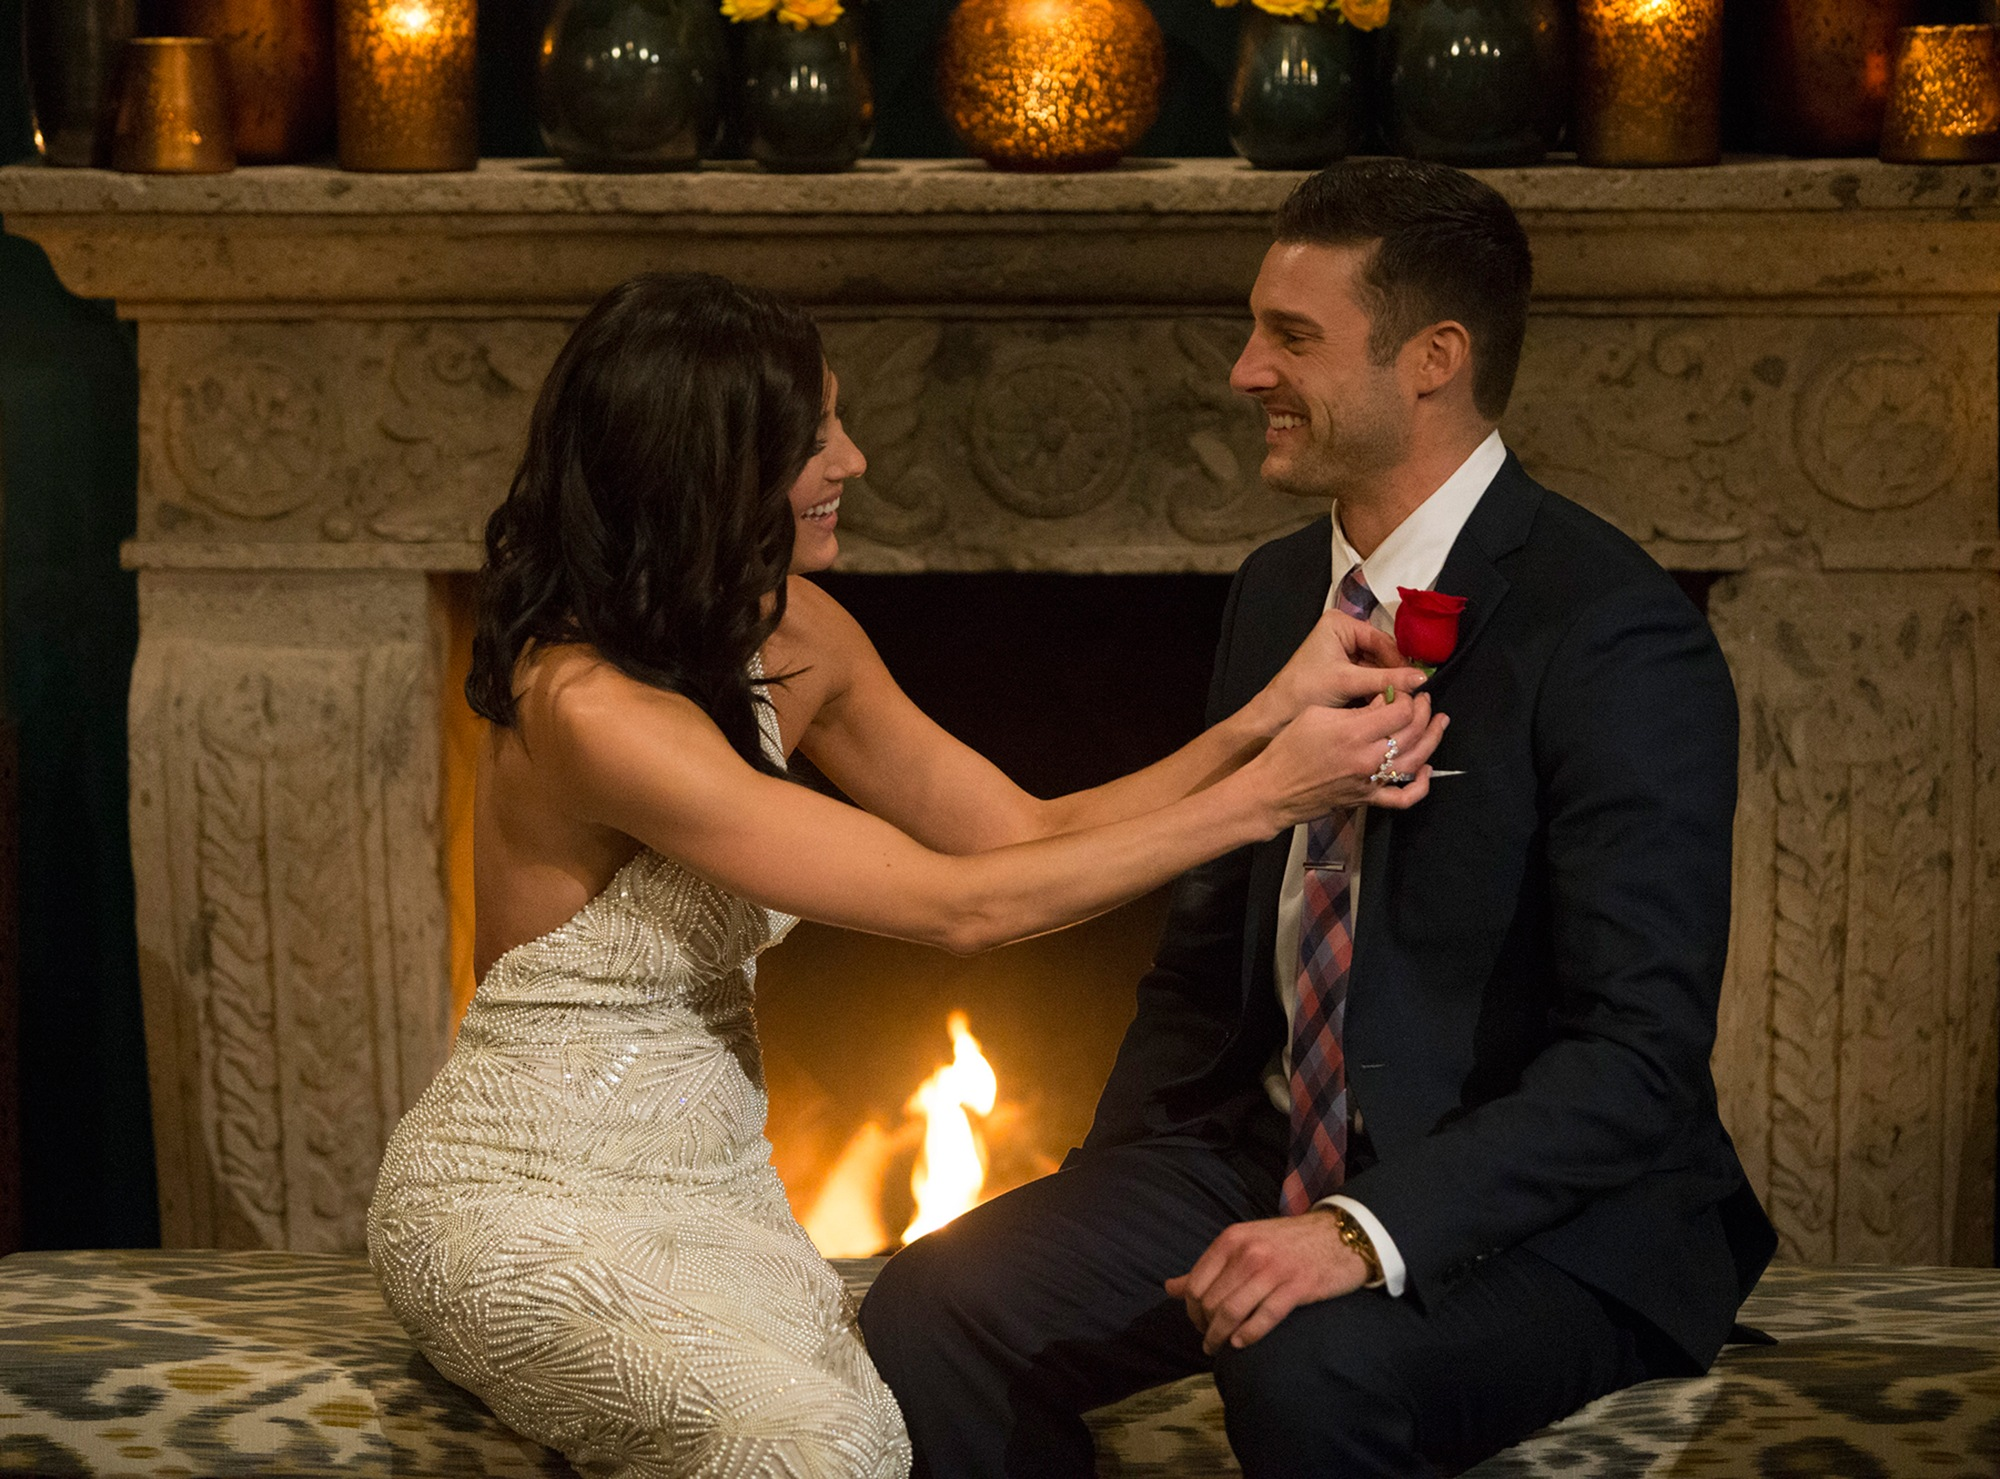 Becca Kufrin and Garrett Yrigoyen on The Bachelorette